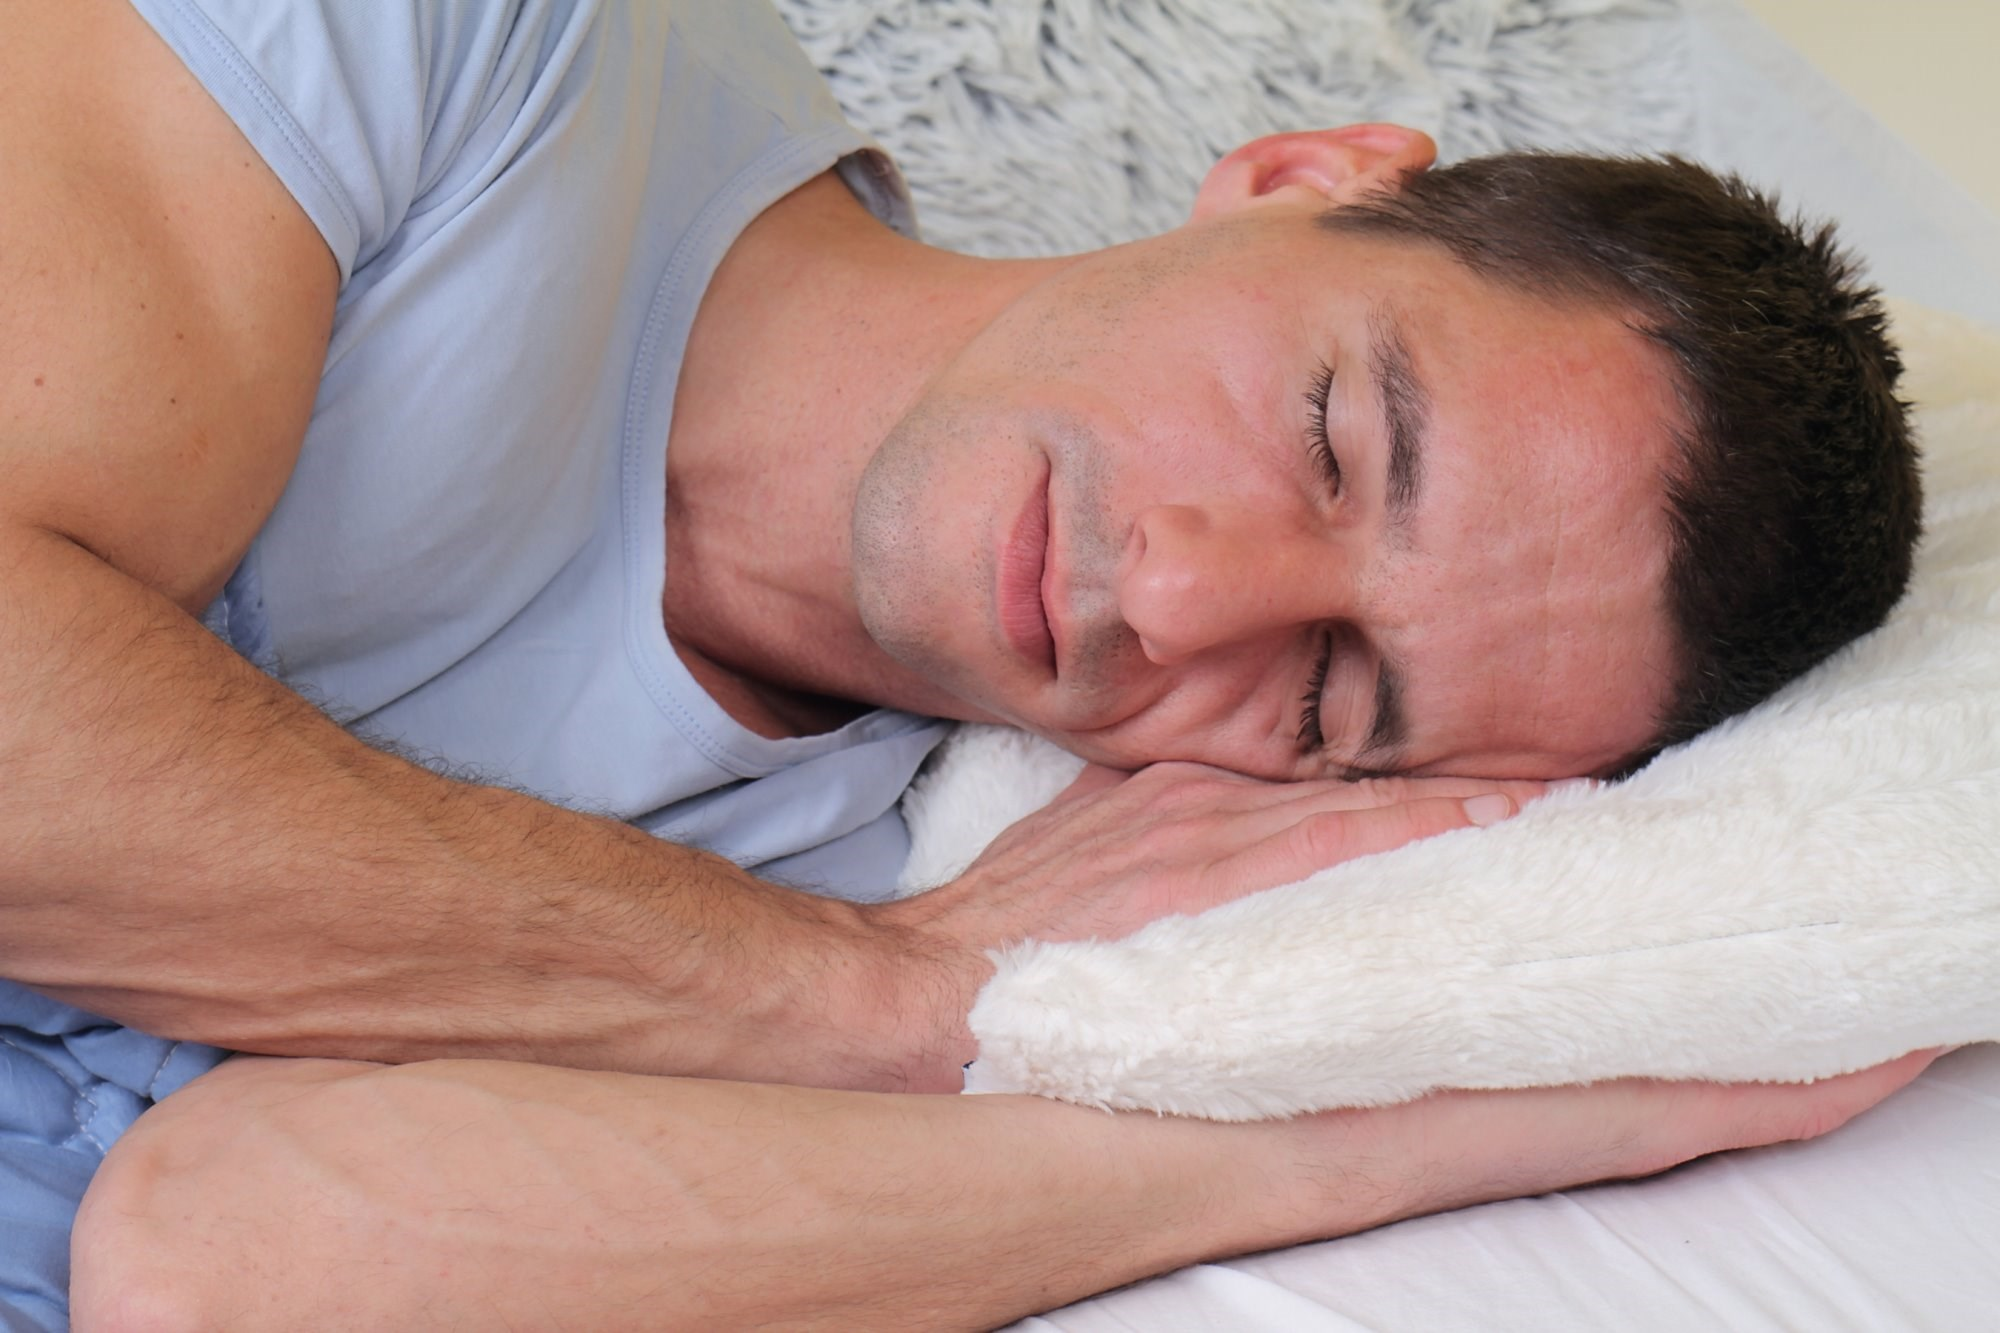 BPH Development, Progression Linked to Sleep Problems